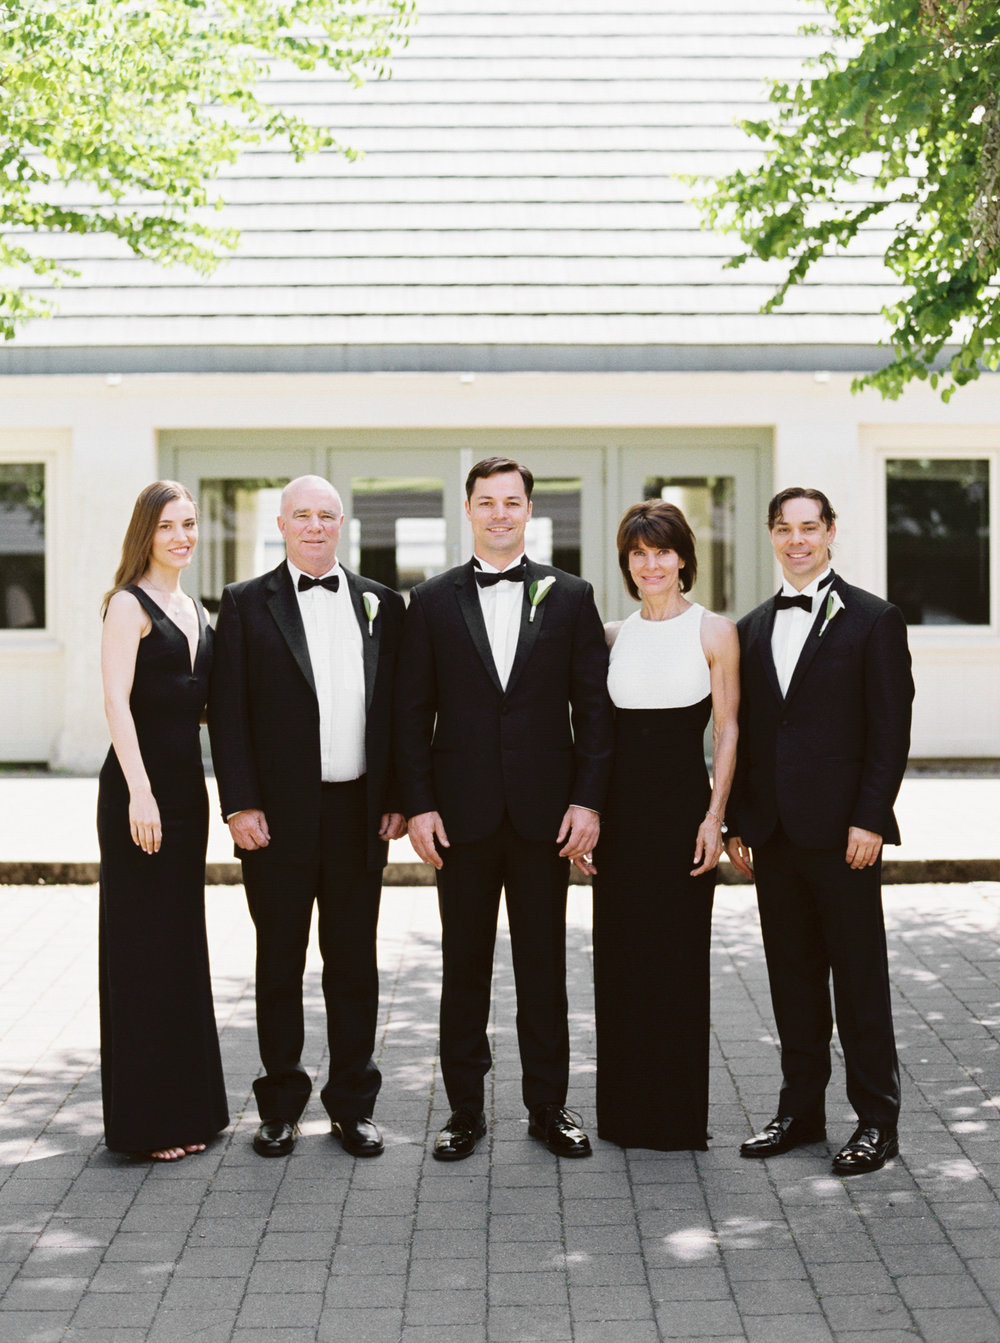 070OutliveCreative_Travel_Photographer_Videographer_Lewis&Clark_Oregon_Elegant_BlackTie_Destination_Wedding.jpg